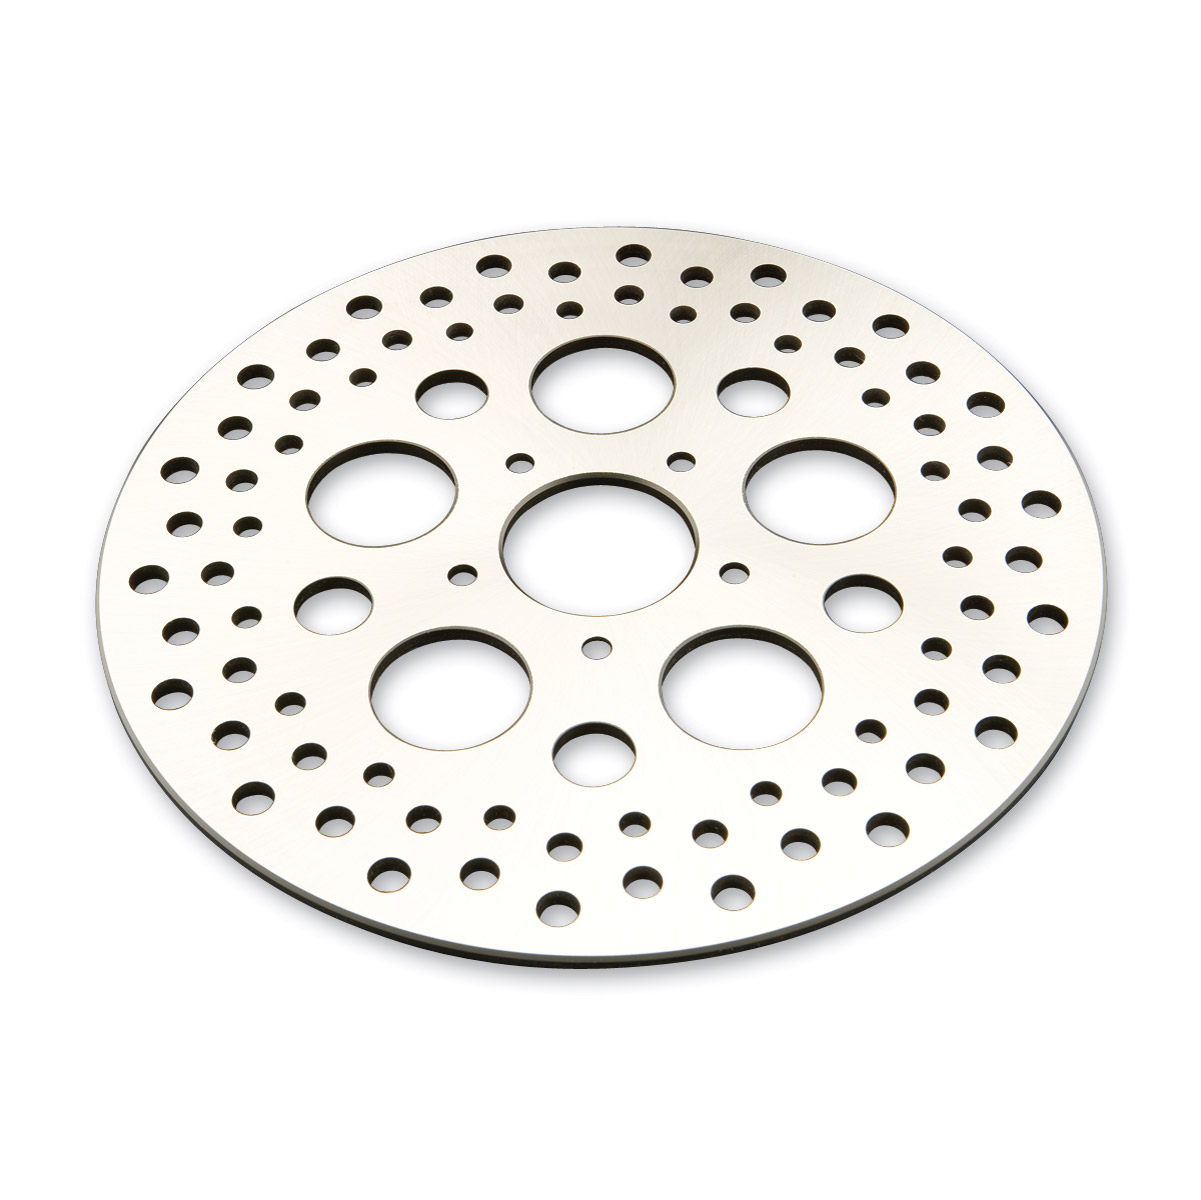 Russell Stainless Steel Front Disc Brake Rotor - R47006